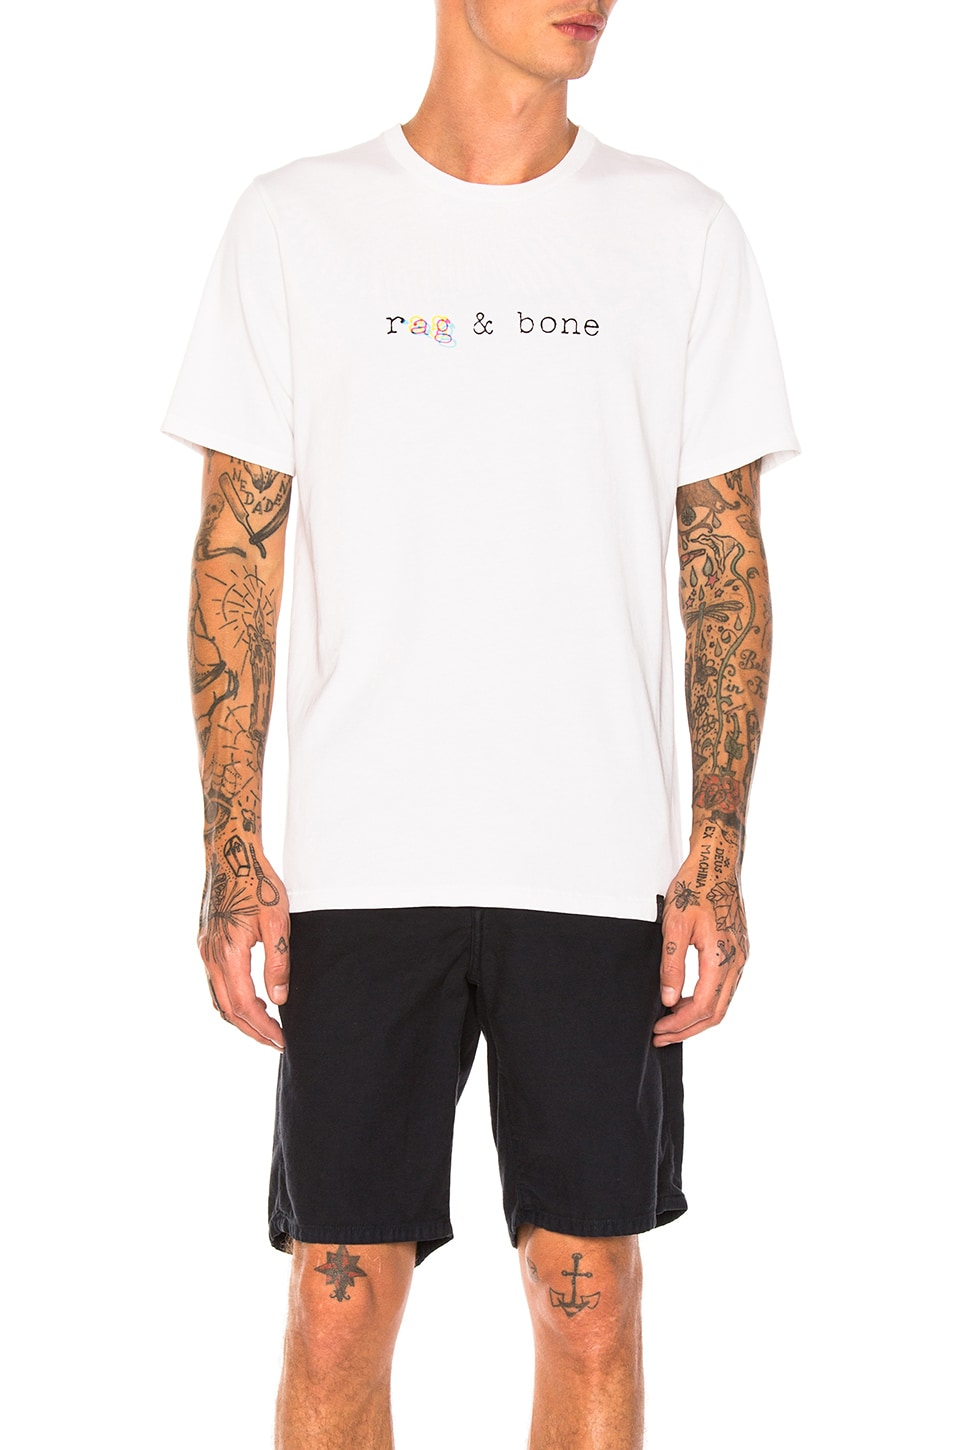 Photo of Glitch Logo Tee by Rag & Bone men clothes